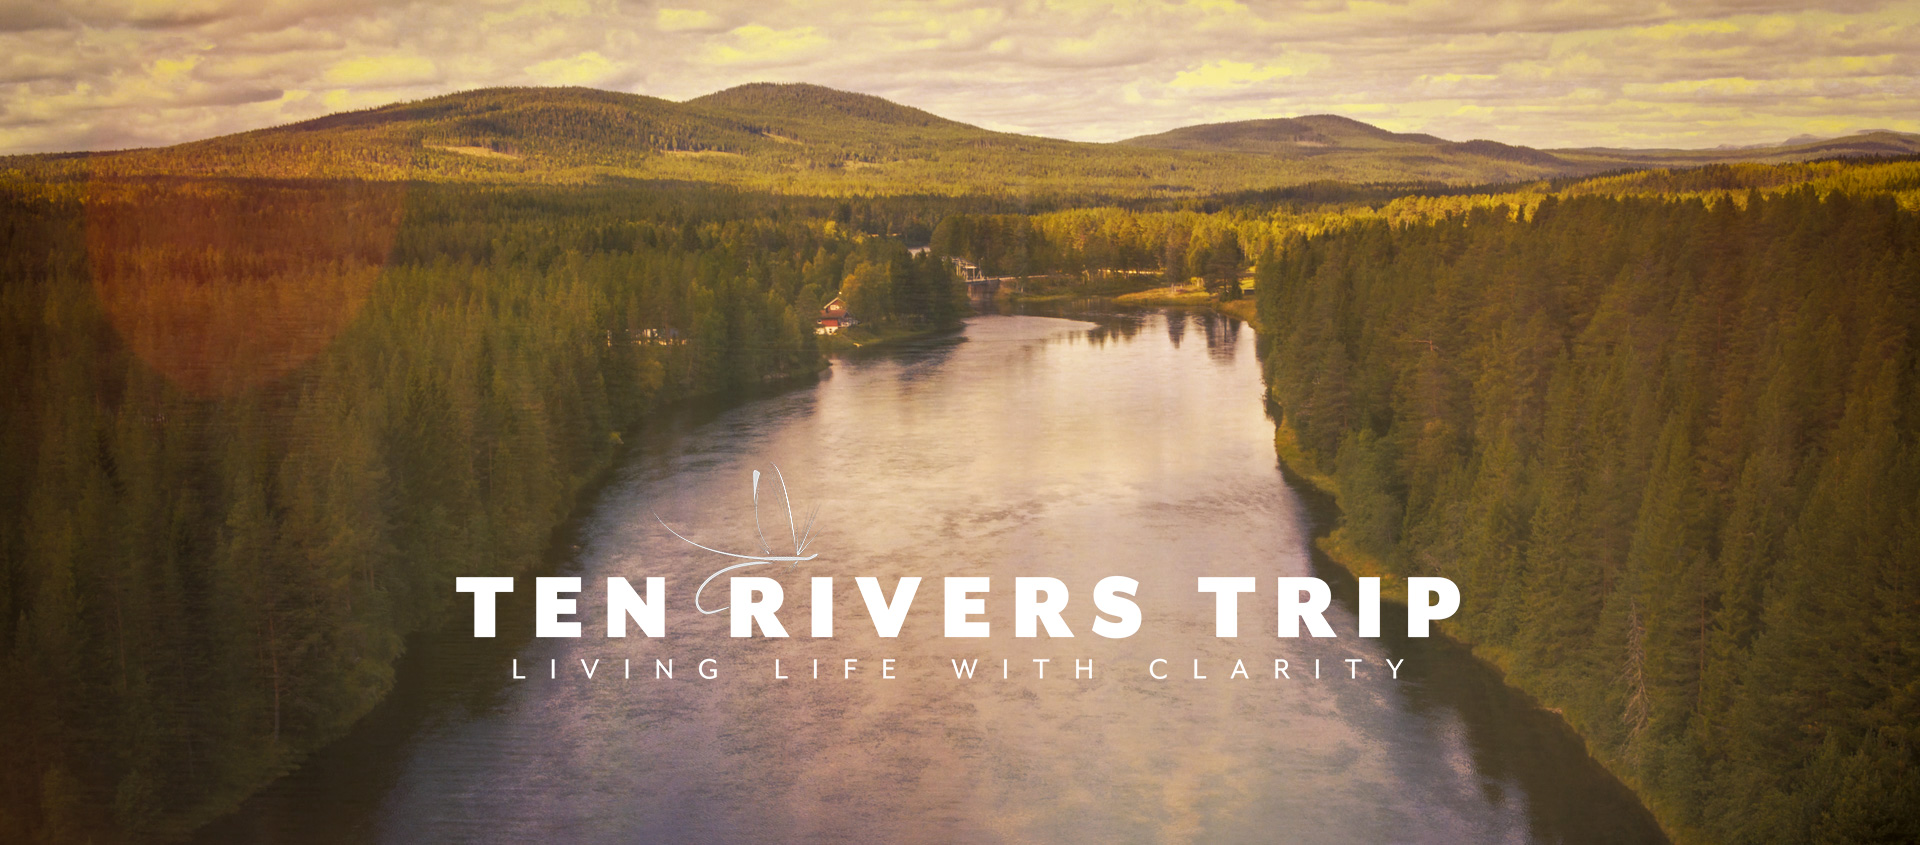 Ten Rivers Trip